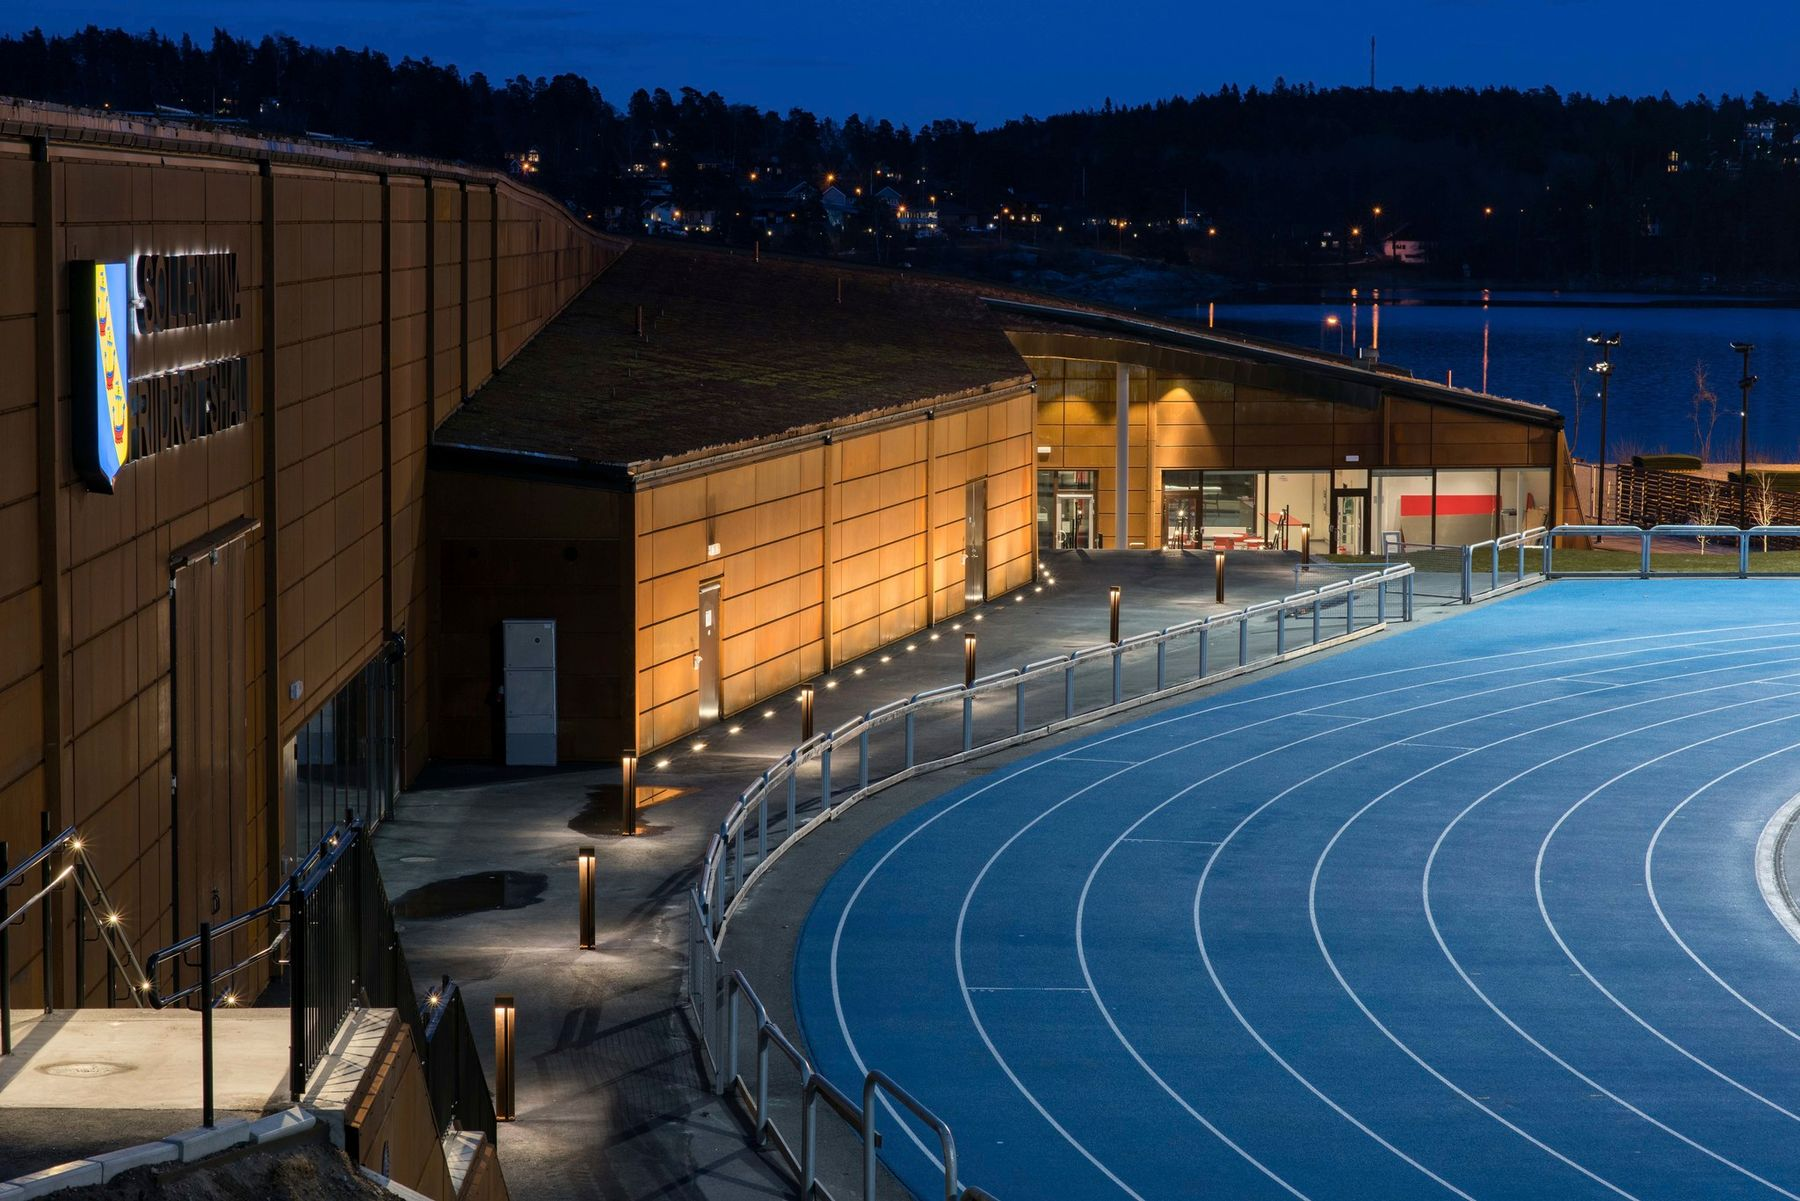 Sollentuna sports hall, Sollentuna. Architecture: Bleck arkitekter AB. Lighting design: Sweco. Photography: Johan Elm, Stockholm.